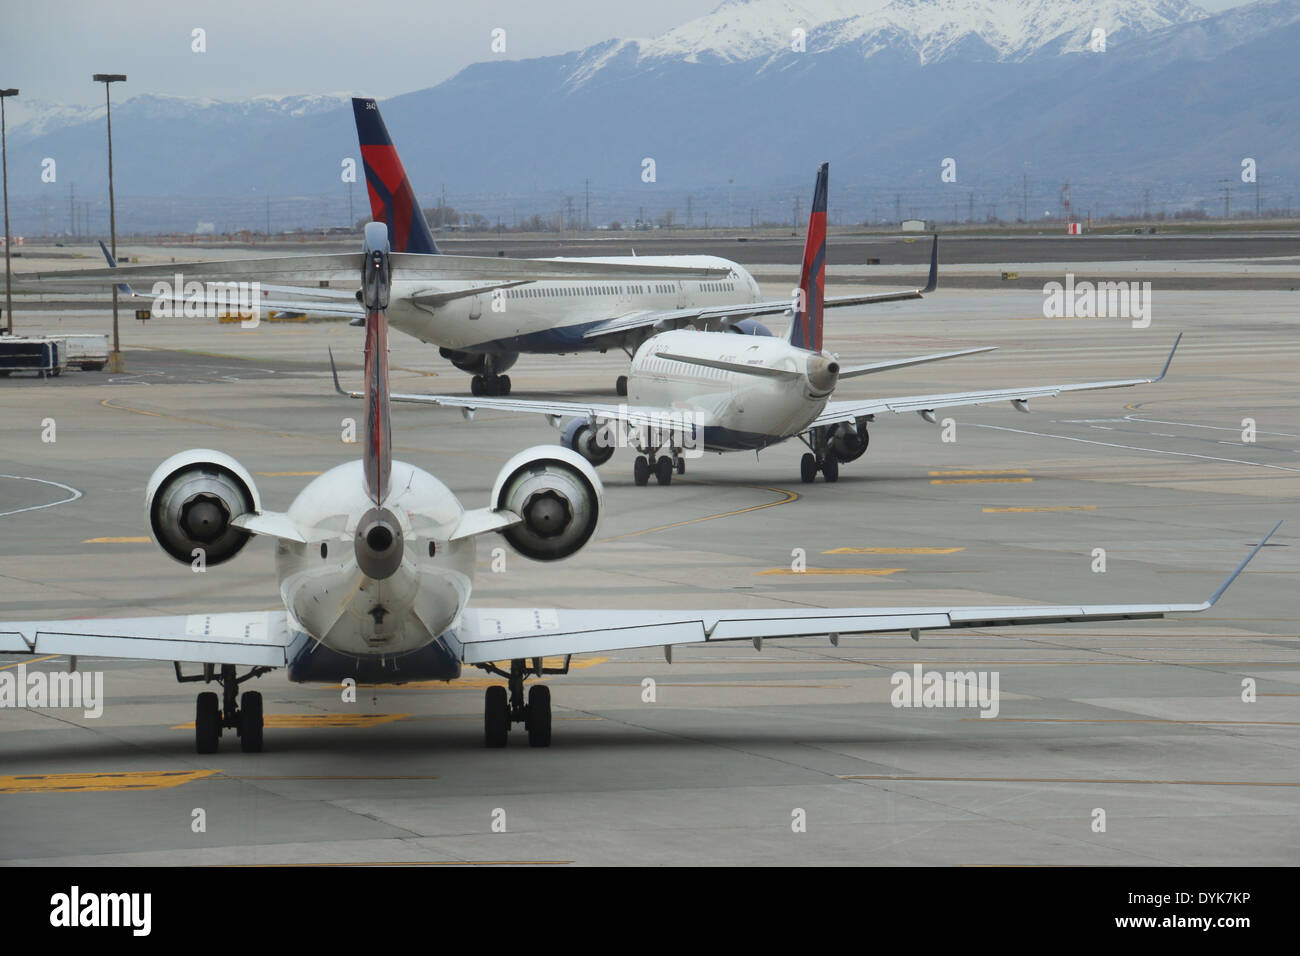 Jet airliners in line on tarmac airport Salt Lake City Utah - Stock Image